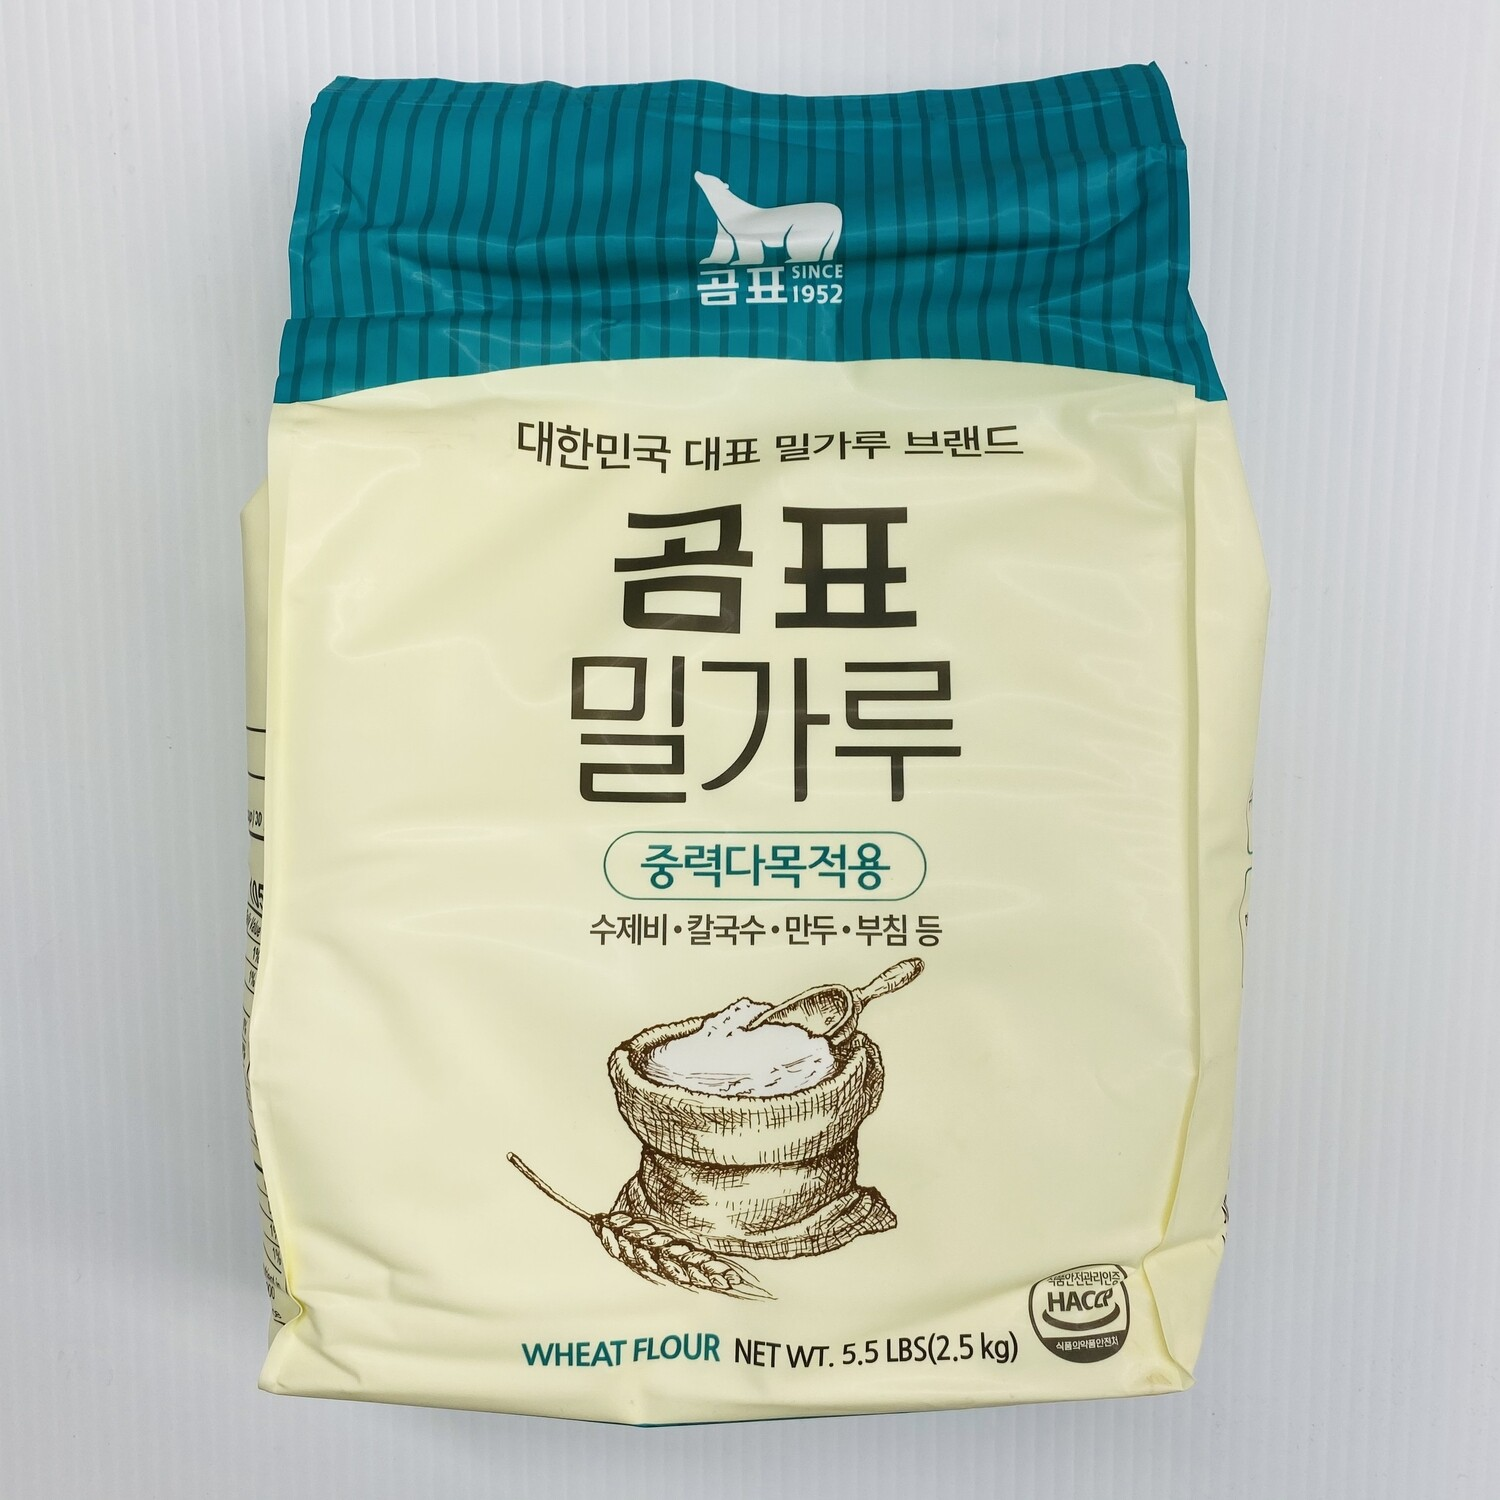 熊牌中筋面粉(限购2包) WANG KOREA WHEAT FLOUR 2.5kg (5.5 lbs)